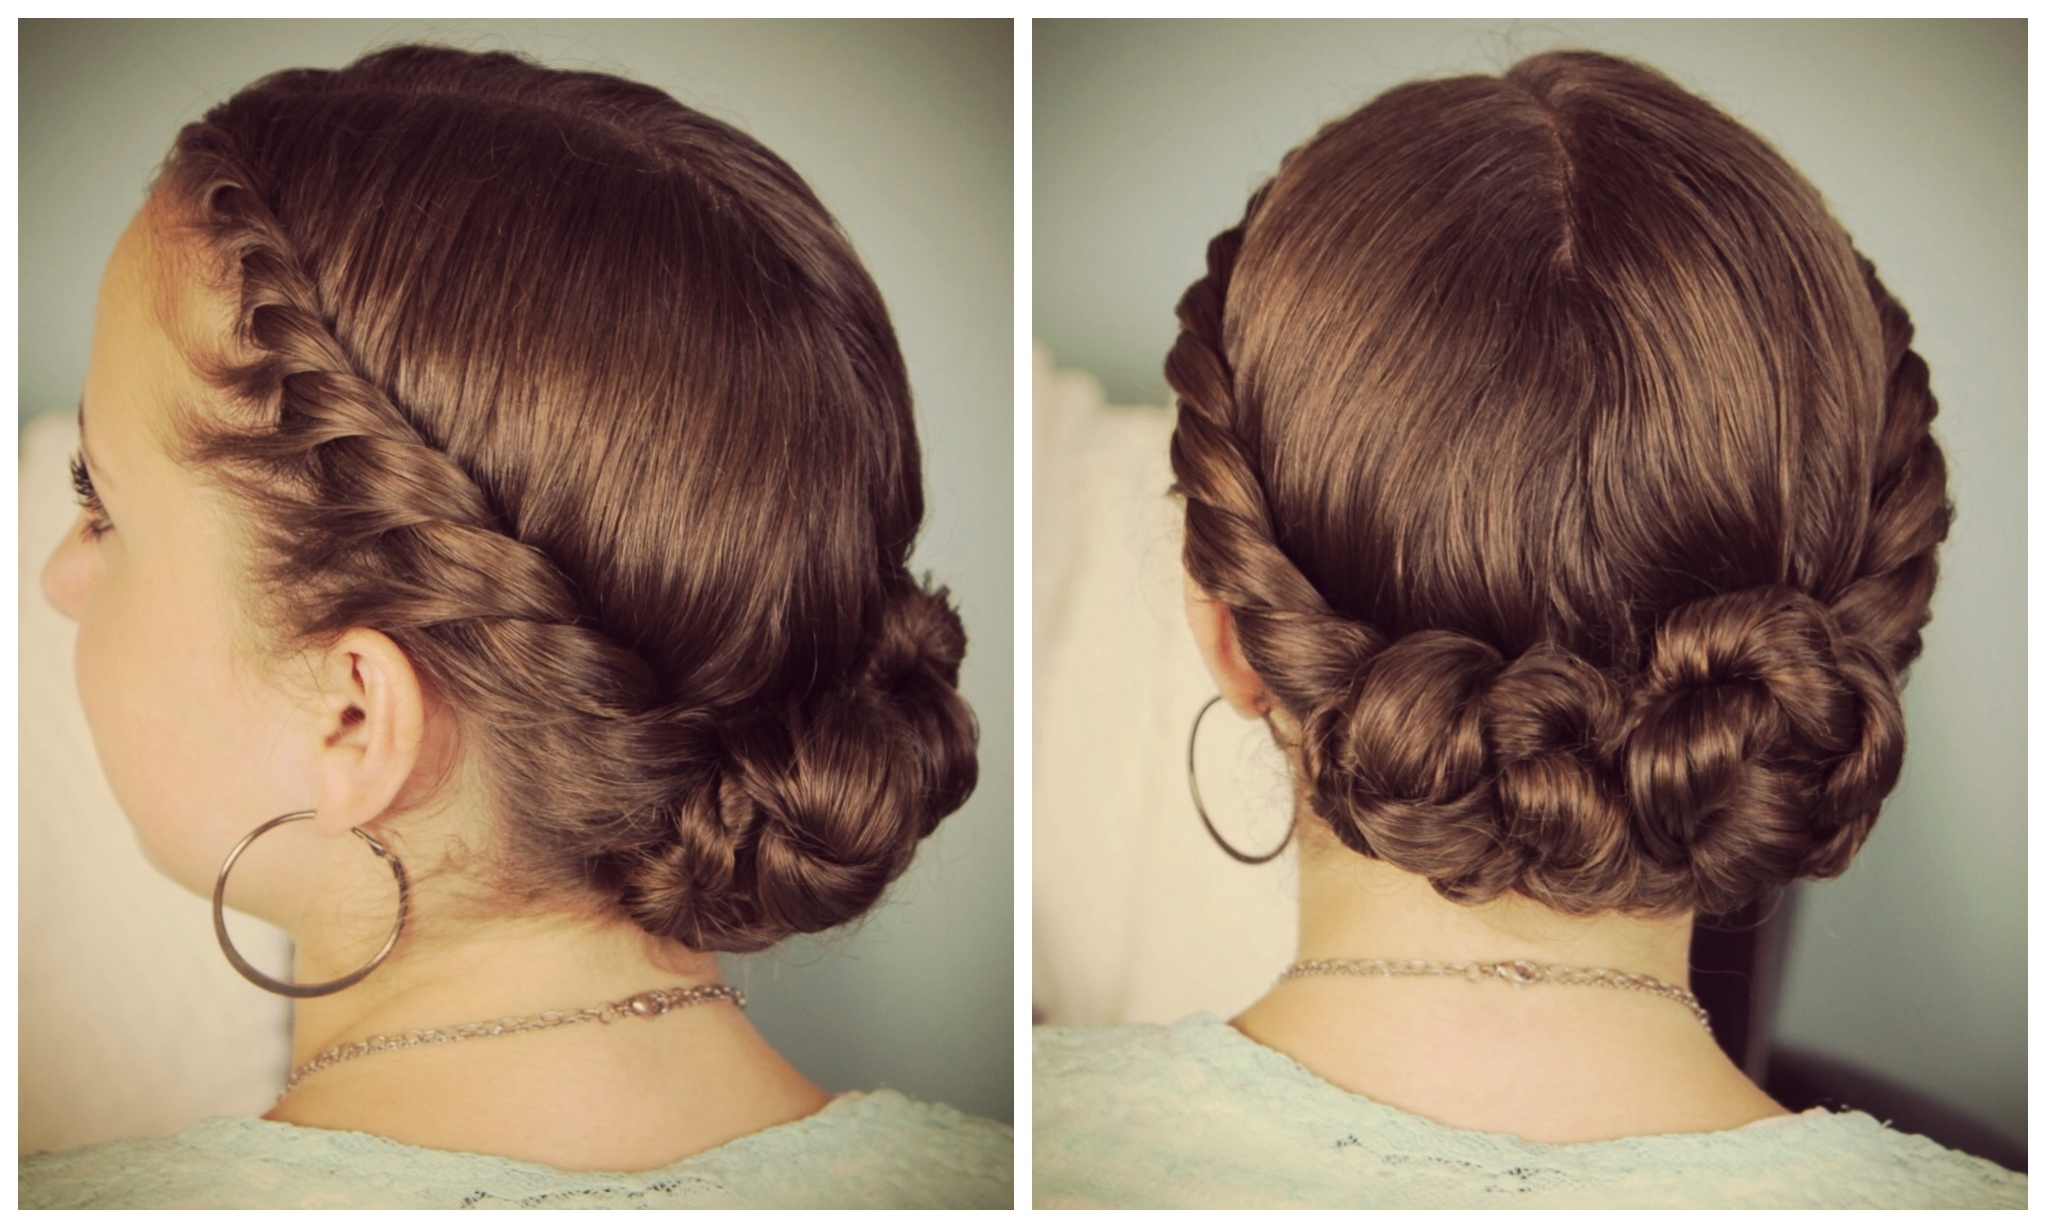 Double Twist Bun Updo Homecoming Hairstyles | Medium Hair Styles With Regard To Updo Hairstyles For Teenager (Gallery 14 of 15)